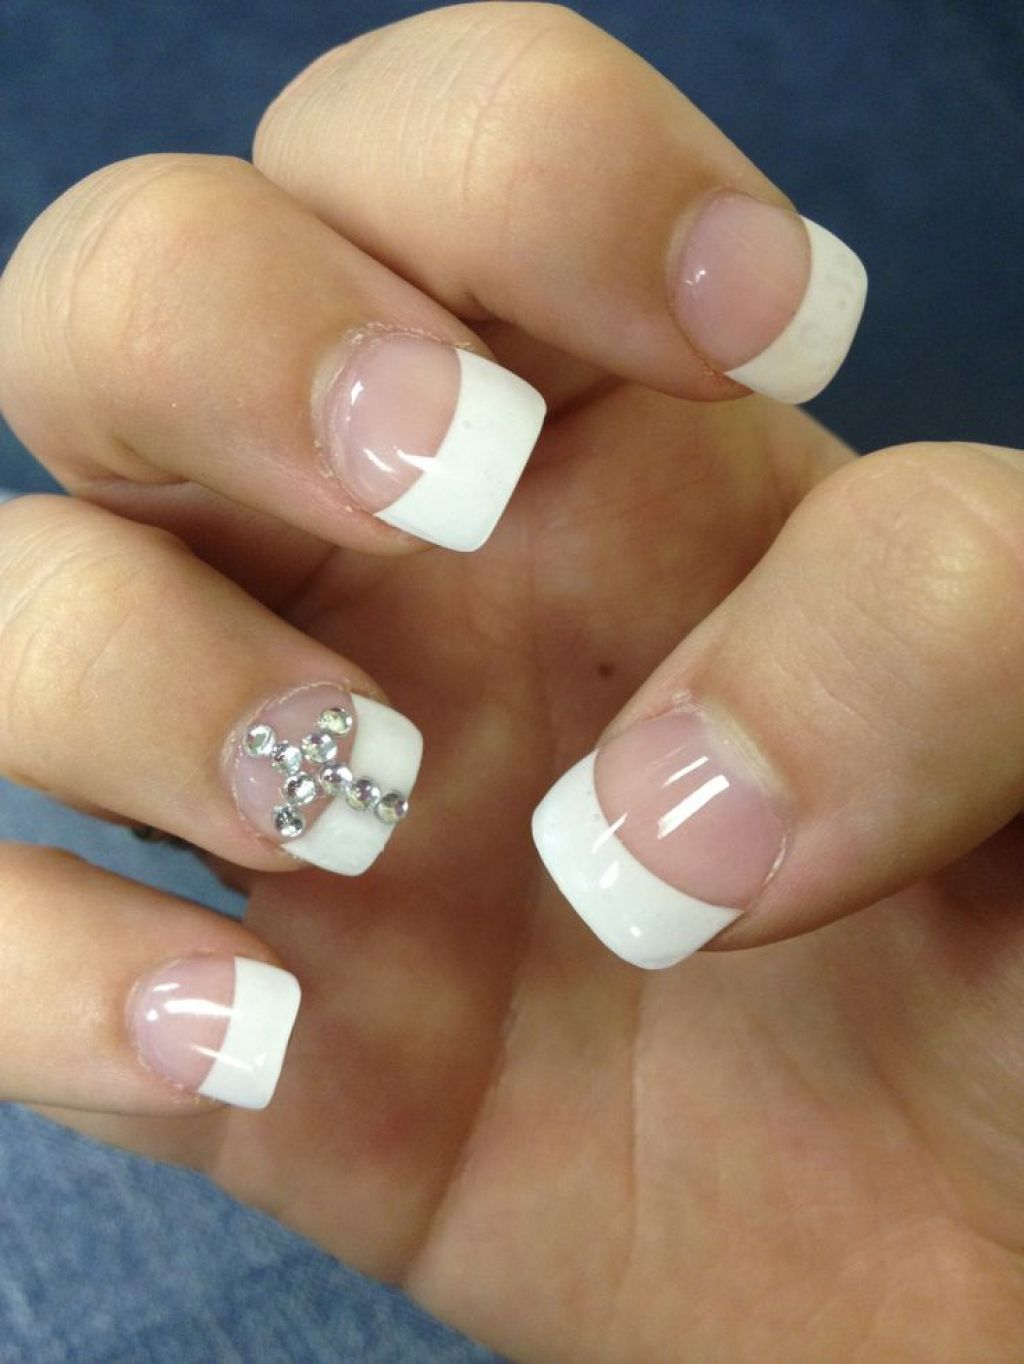 nail-designs-with-rhinestones-and-crosses-cross-acrylic-nails-tumblr ...